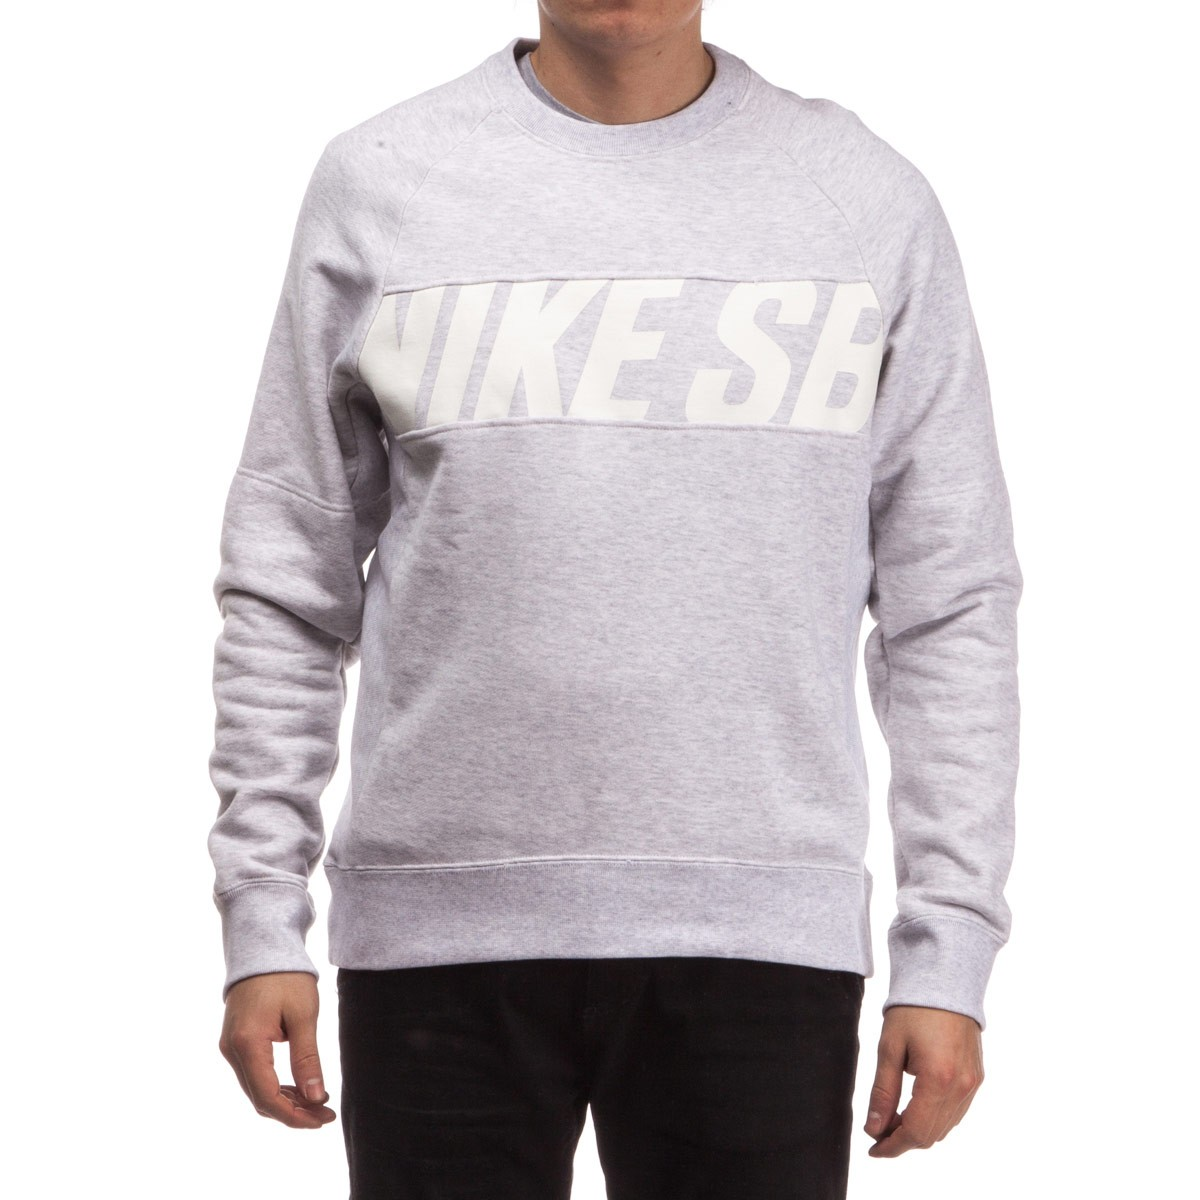 Motion Everett Sb Nike Birch Crew Sweatshirt Heatherwhite pE8aq